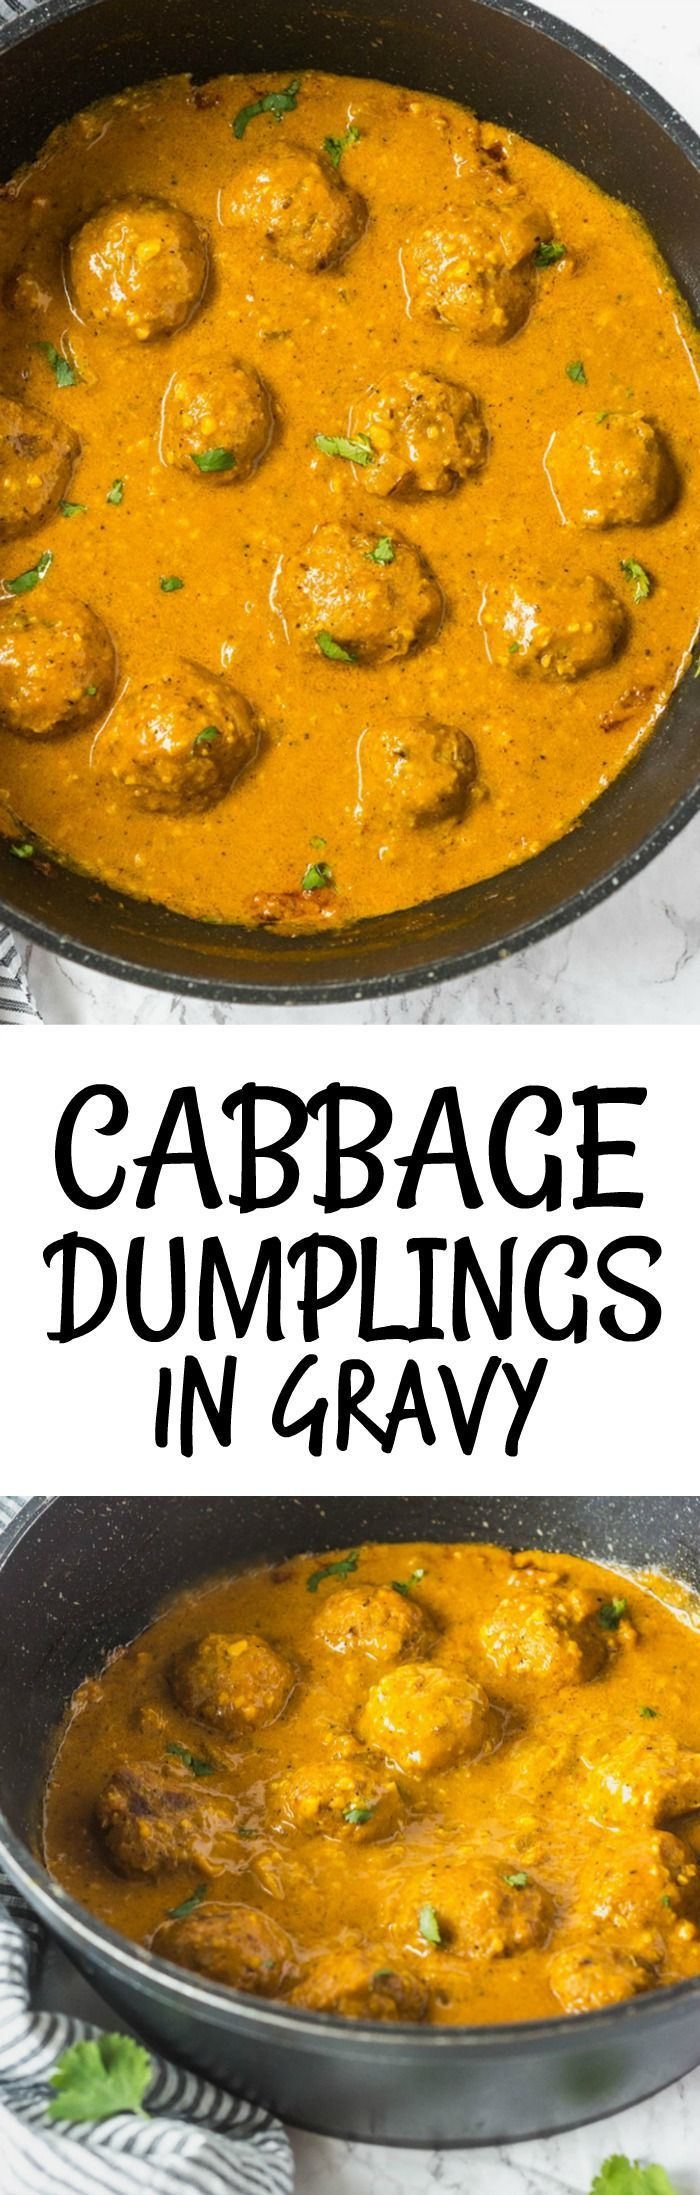 Cabbage Dumplings  // Want to try this without the gravy!